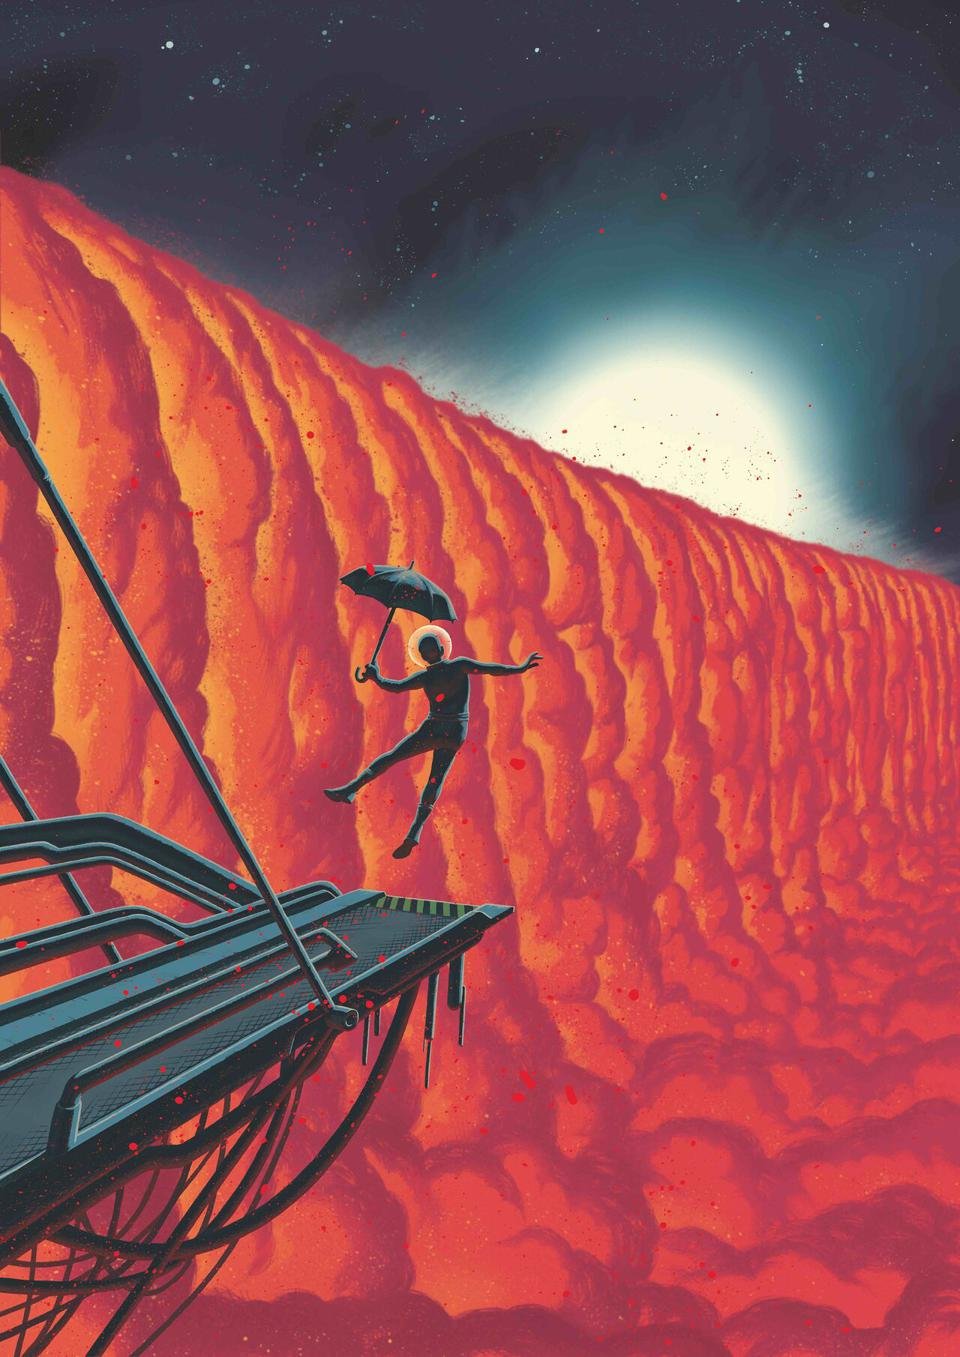 This comic-book-style illustration by Swiss graphic novelist Frederik Peeters shows a close-up view of the evening border of the exoplanet WASP-76b. The ultra-hot giant exoplanet has a day side where temperatures climb above 2400 degrees Celsius, high enough to vaporise metals. Strong winds carry iron vapour to the cooler night side where it condenses into iron droplets.  Theoretical studies show that a planet, like WASP-76b, with an extremely hot day side and colder night side would have a gigantic condensation front in the form of a cloud cascade at its evening border, the transition from day to night, as depicted here.